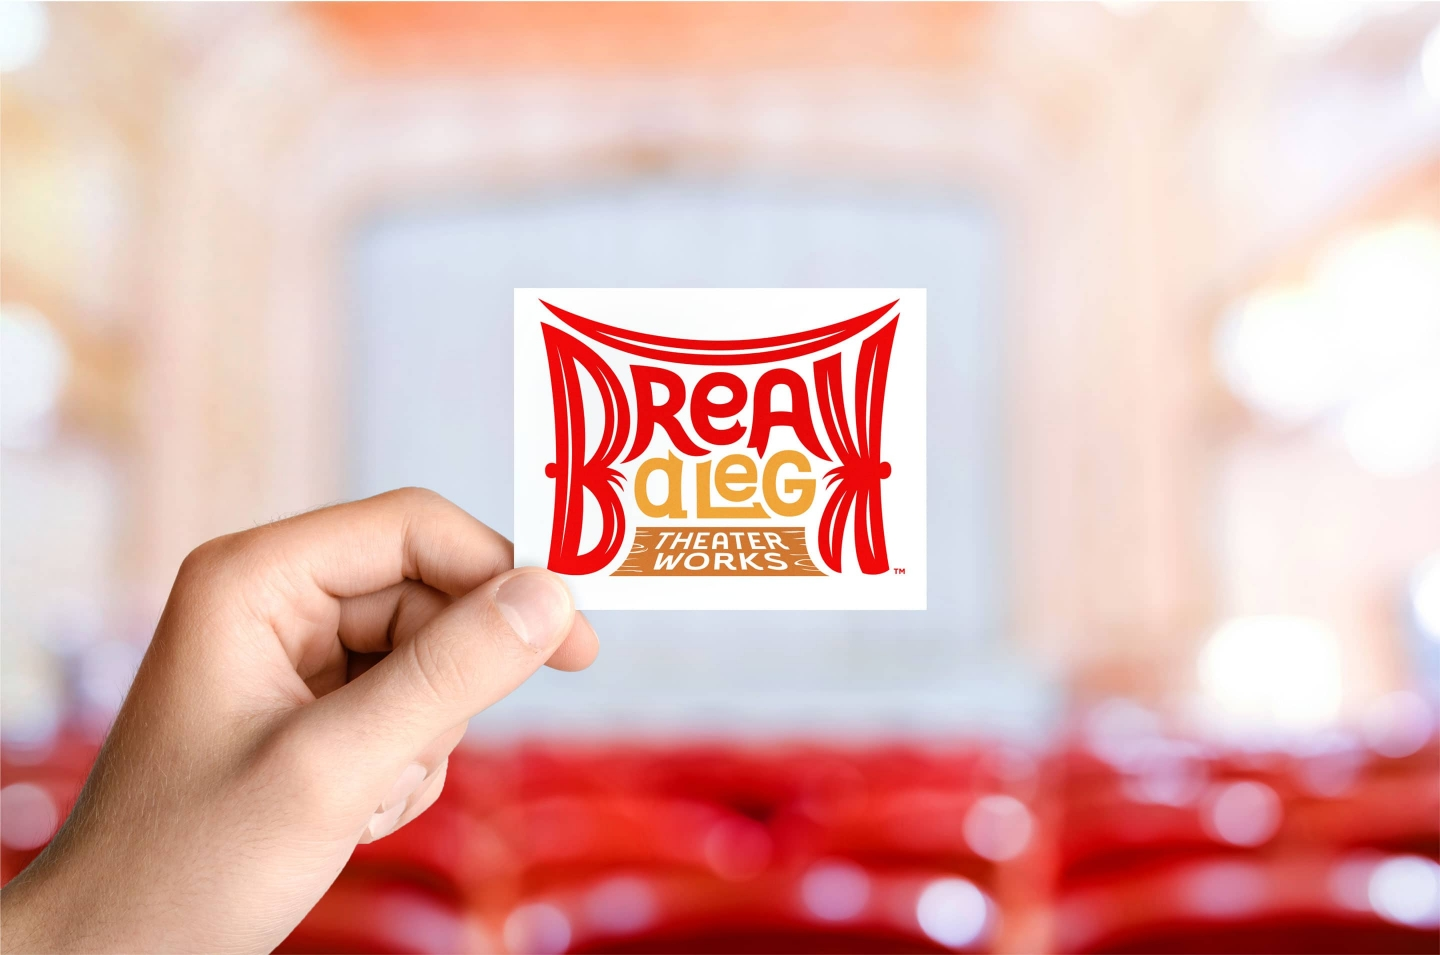 Break A Leg Theater logo on business card with stage background